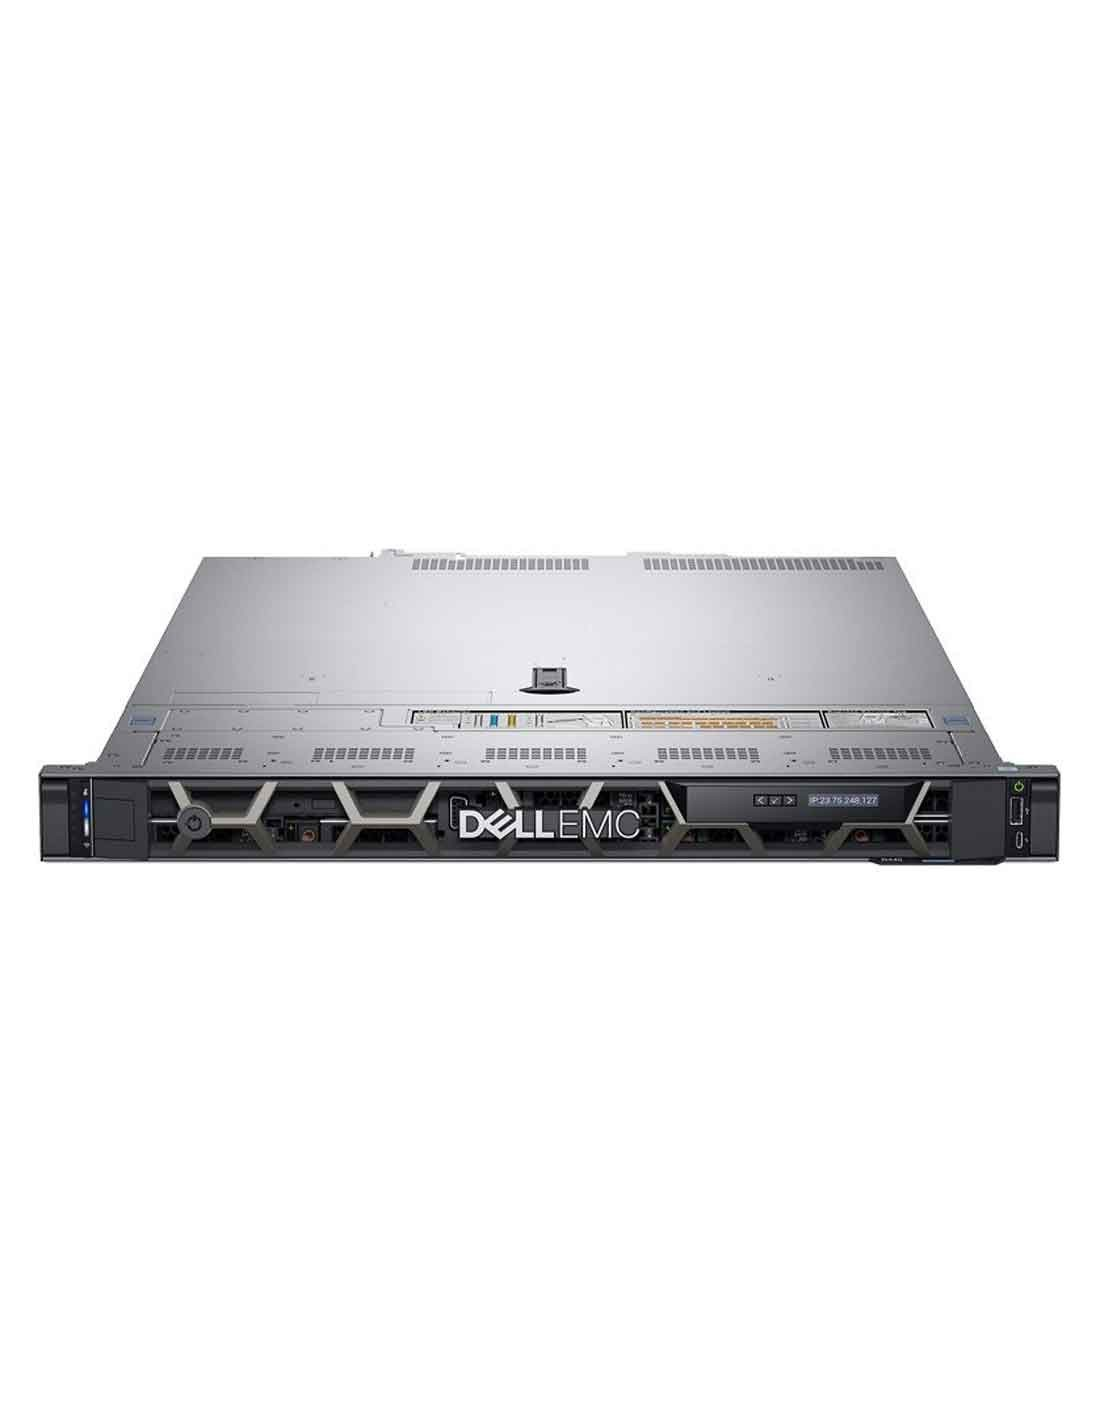 Dell PowerEdge R440 Rack Server at the cheapest price and fast free delivery in Dubai, UAE